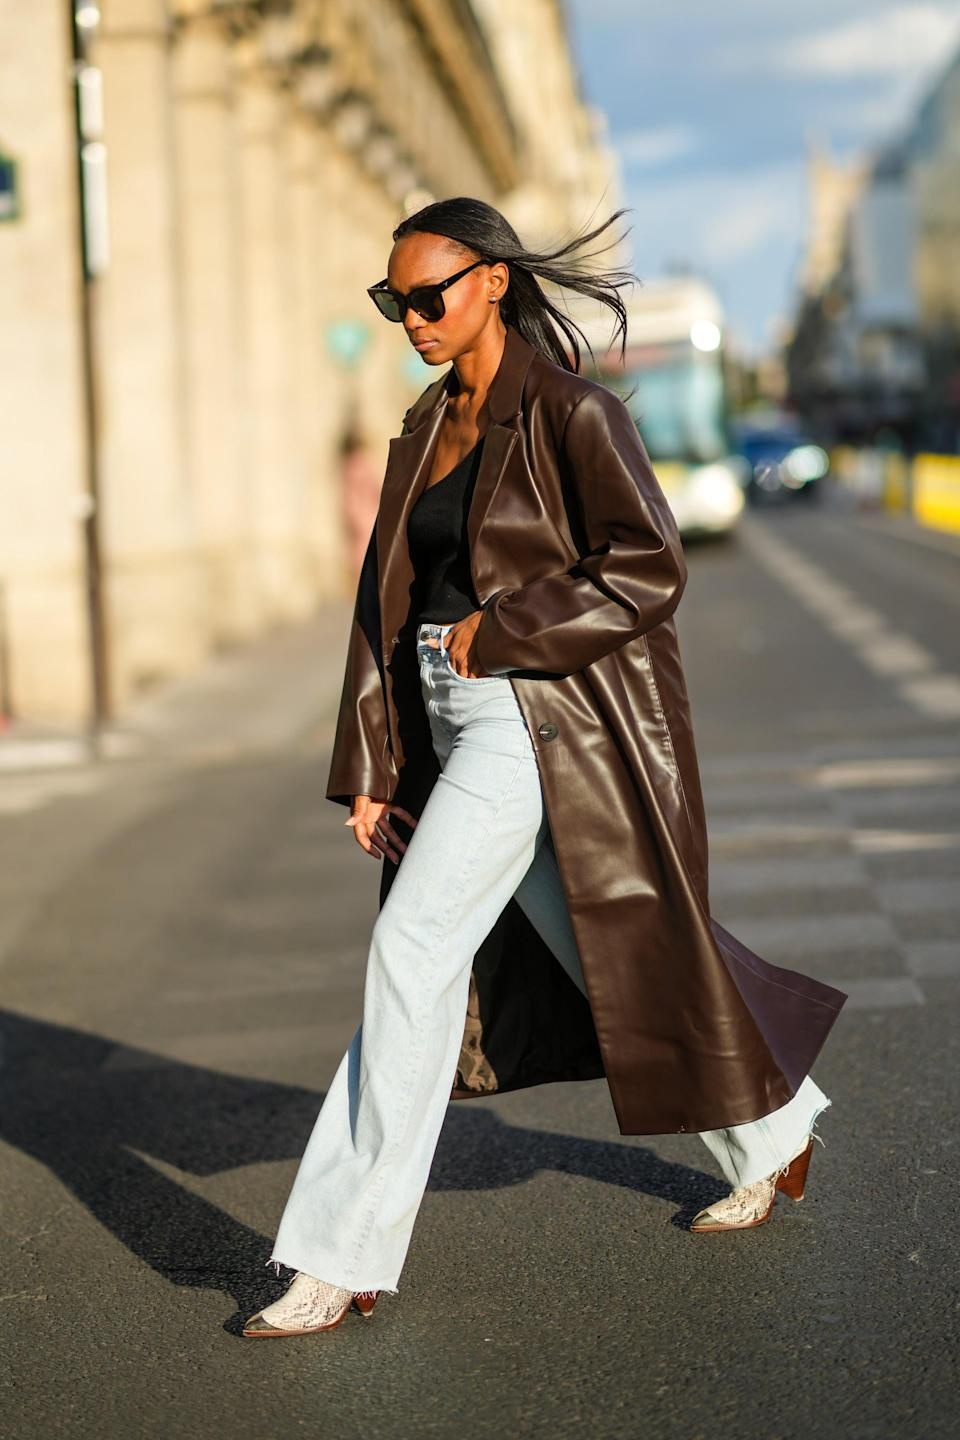 <p>Longline leather coats get a fresh upgrade in a swathe of new colors - like pastels and gem tones. Whatever iteration you choose, this outerwear will provide the sleek finish to any outfit.</p>